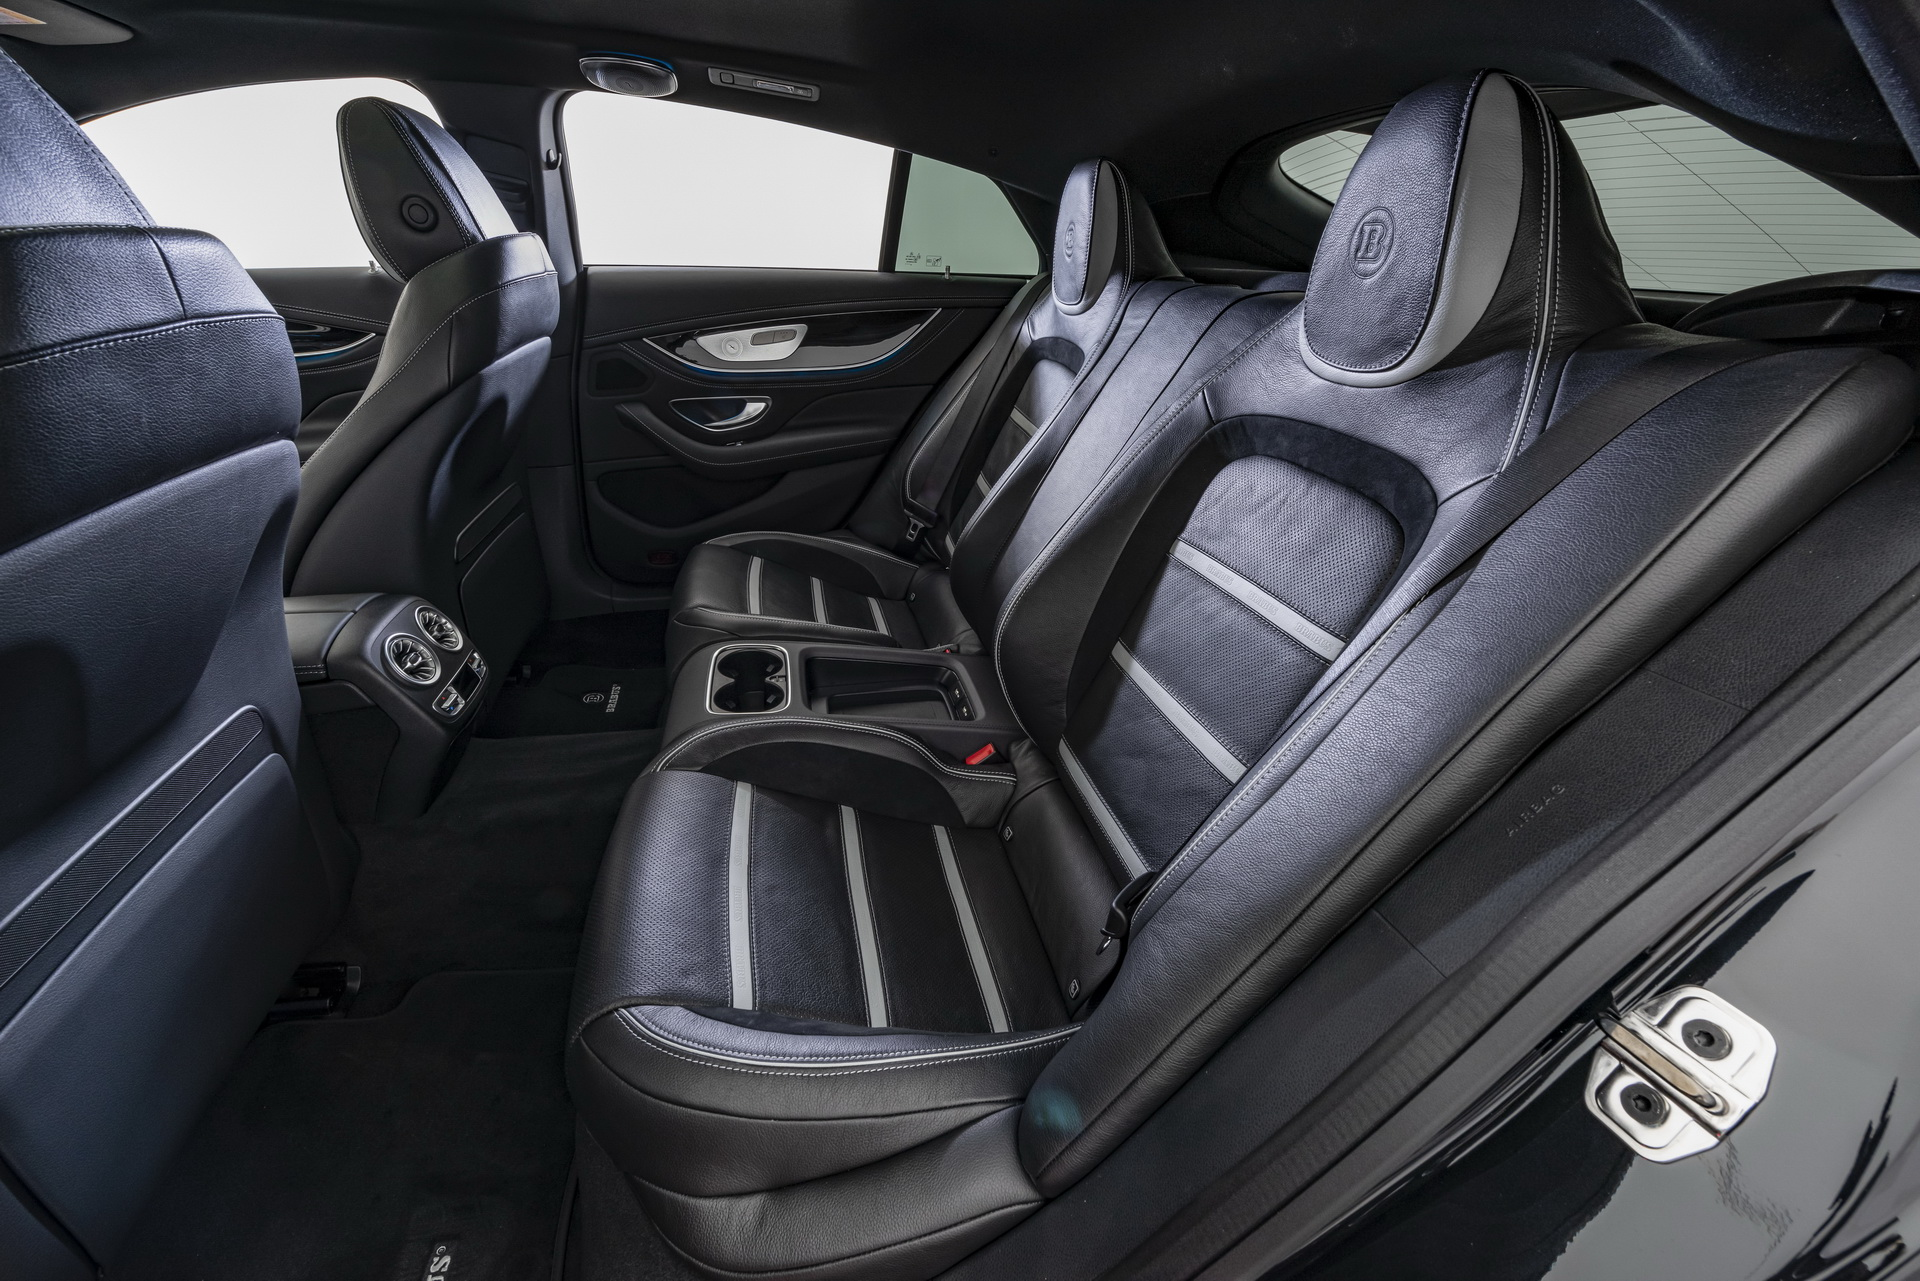 Brabus GT63 S AMG Rear Seats